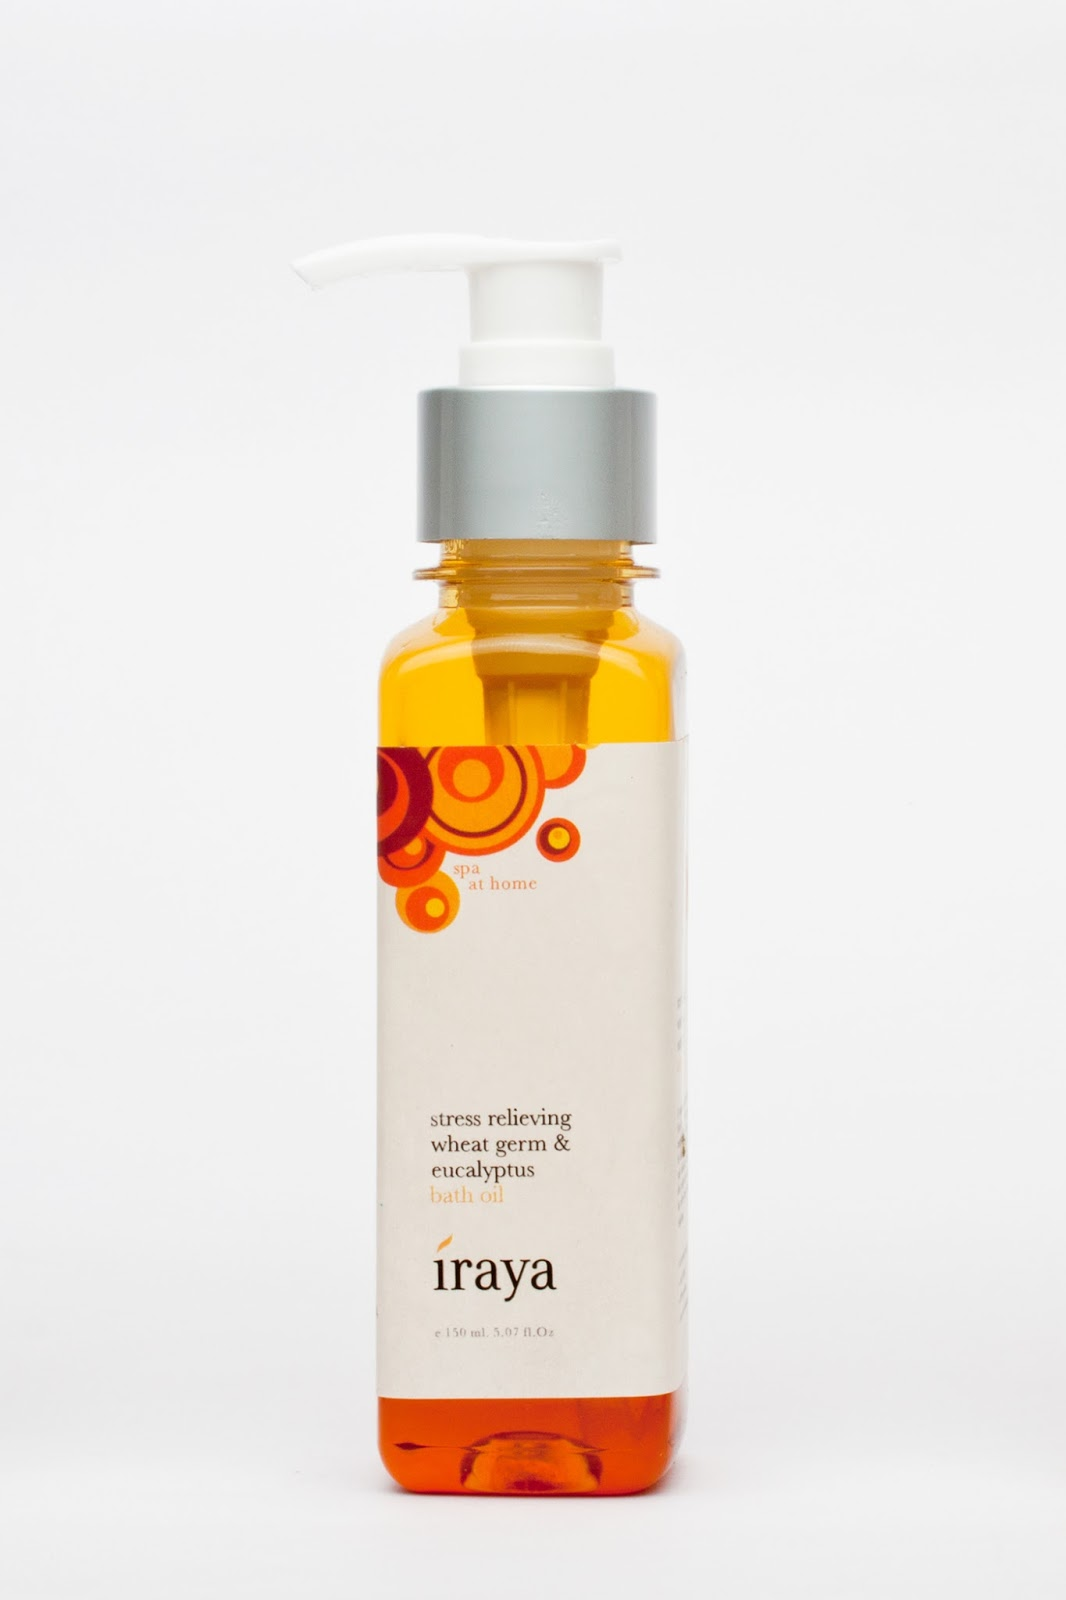 Iraya Stress Relieving Bath Oil - Wheatgerm & Eucalyptus